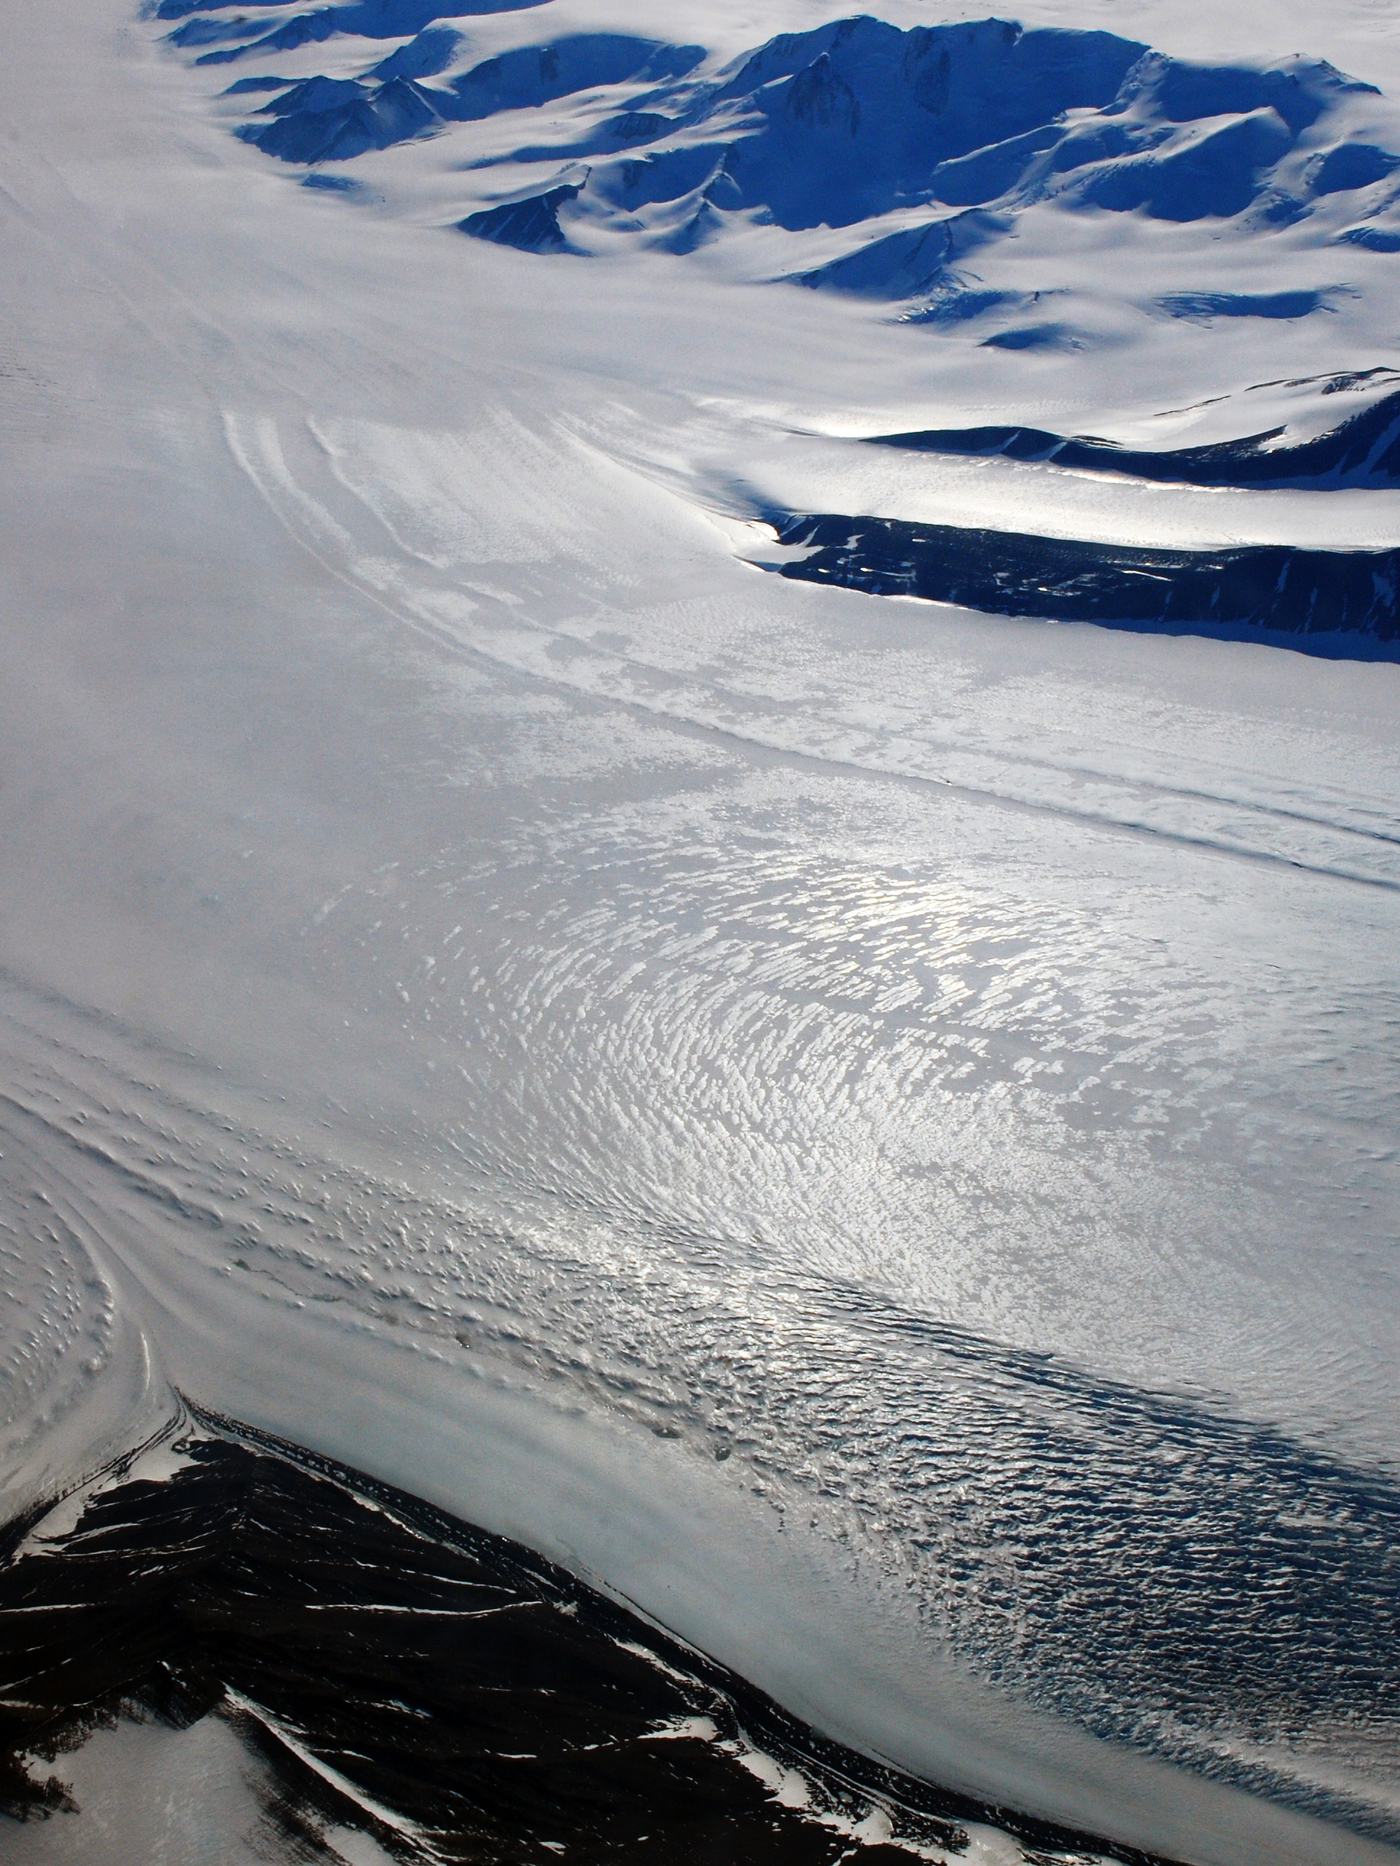 The Beardmore Glacier in Antarctica, as seen in 2008, near where the fossilized remains of an ancient beetle species were found.